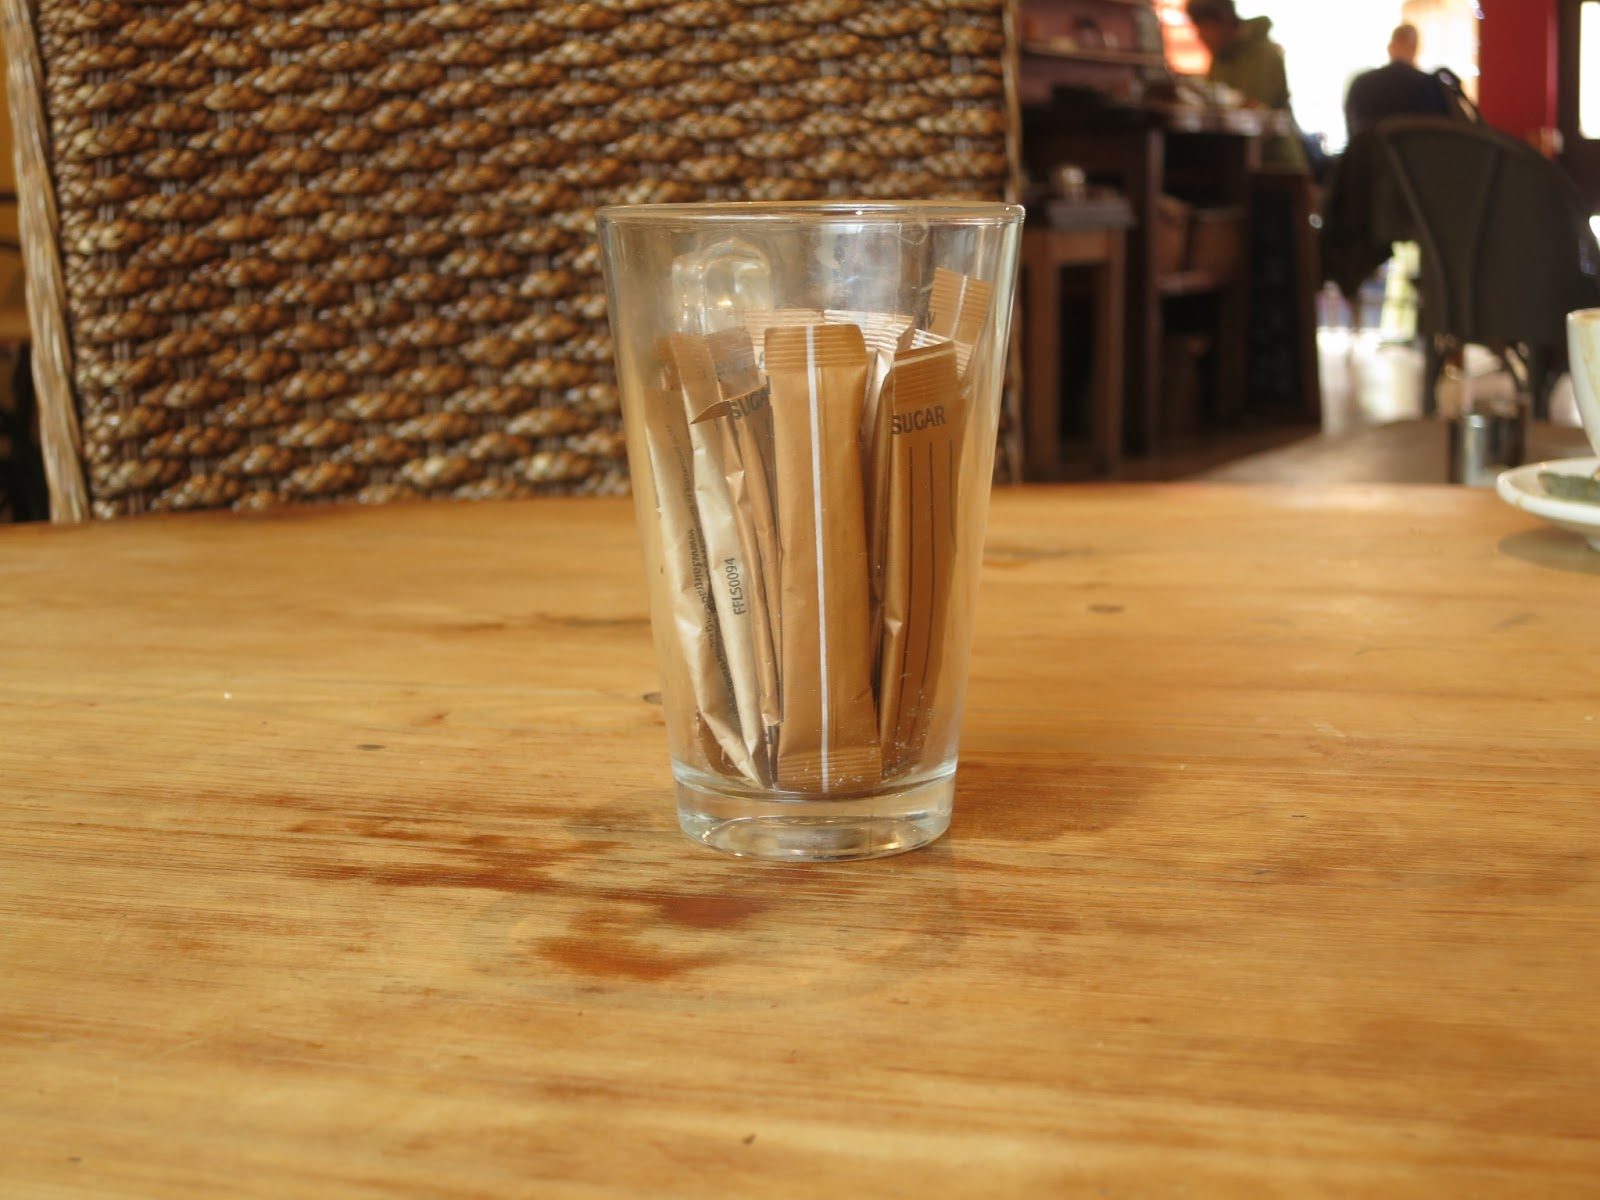 Water glass containing thin packets of sugar on a wooden table beside a wicker backed chair in cafe.